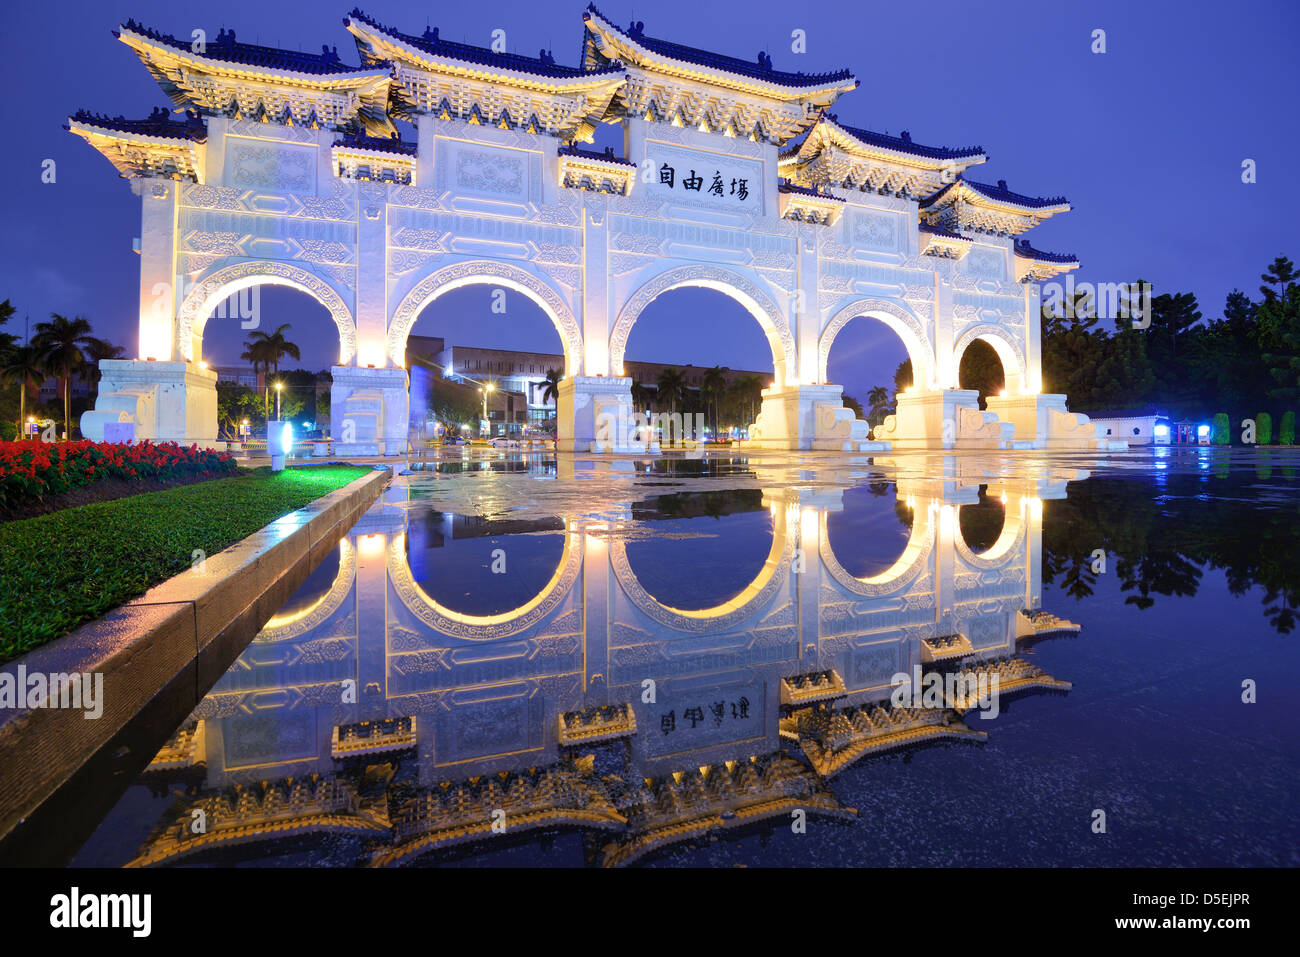 Liberty Square arches in Taipei, Taiwan. - Stock Image